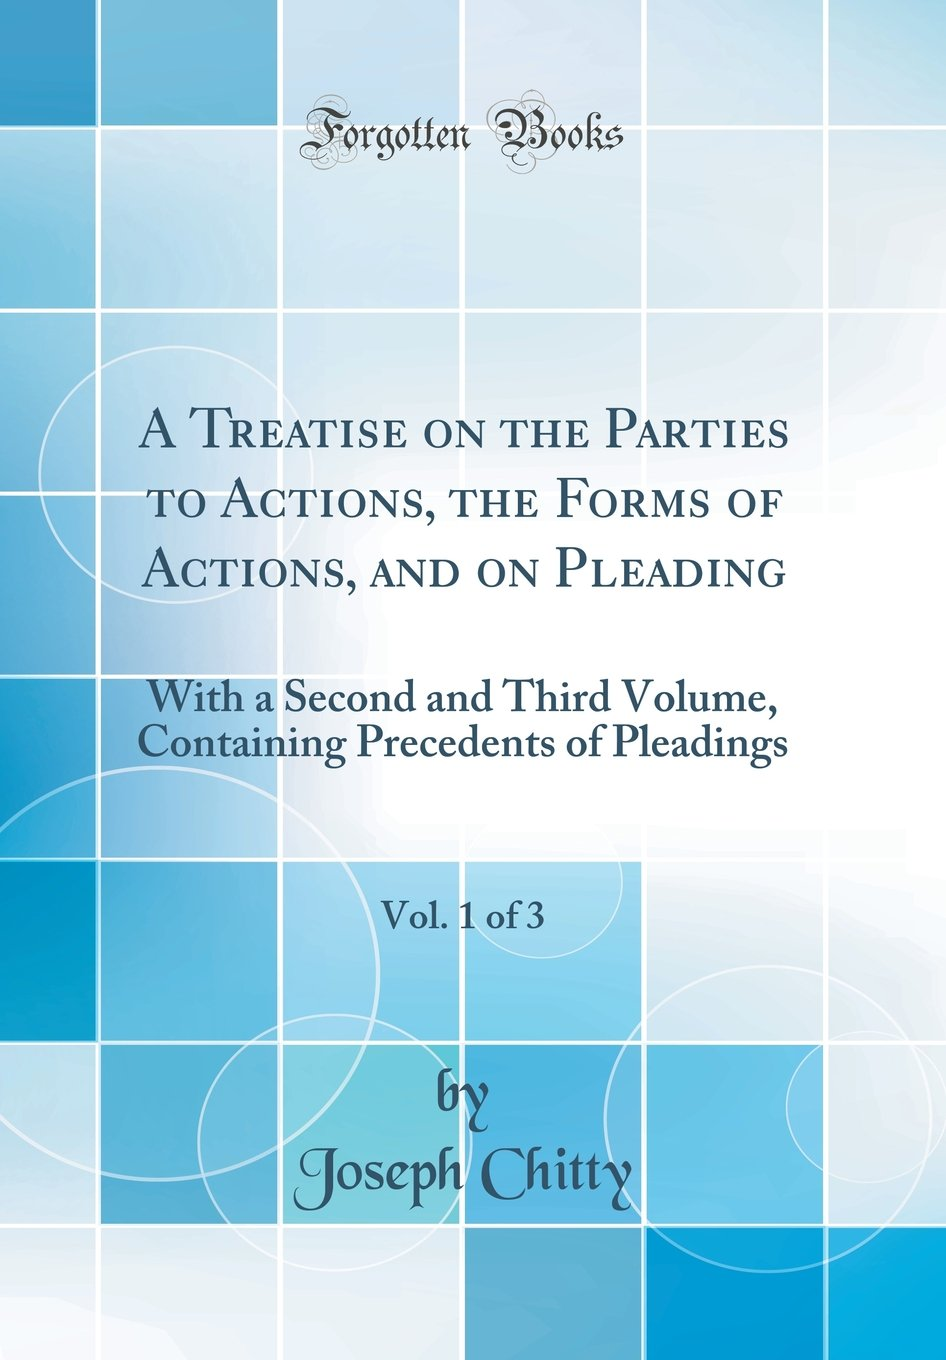 Read Online A Treatise on the Parties to Actions, the Forms of Actions, and on Pleading, Vol. 1 of 3: With a Second and Third Volume, Containing Precedents of Pleadings (Classic Reprint) ebook